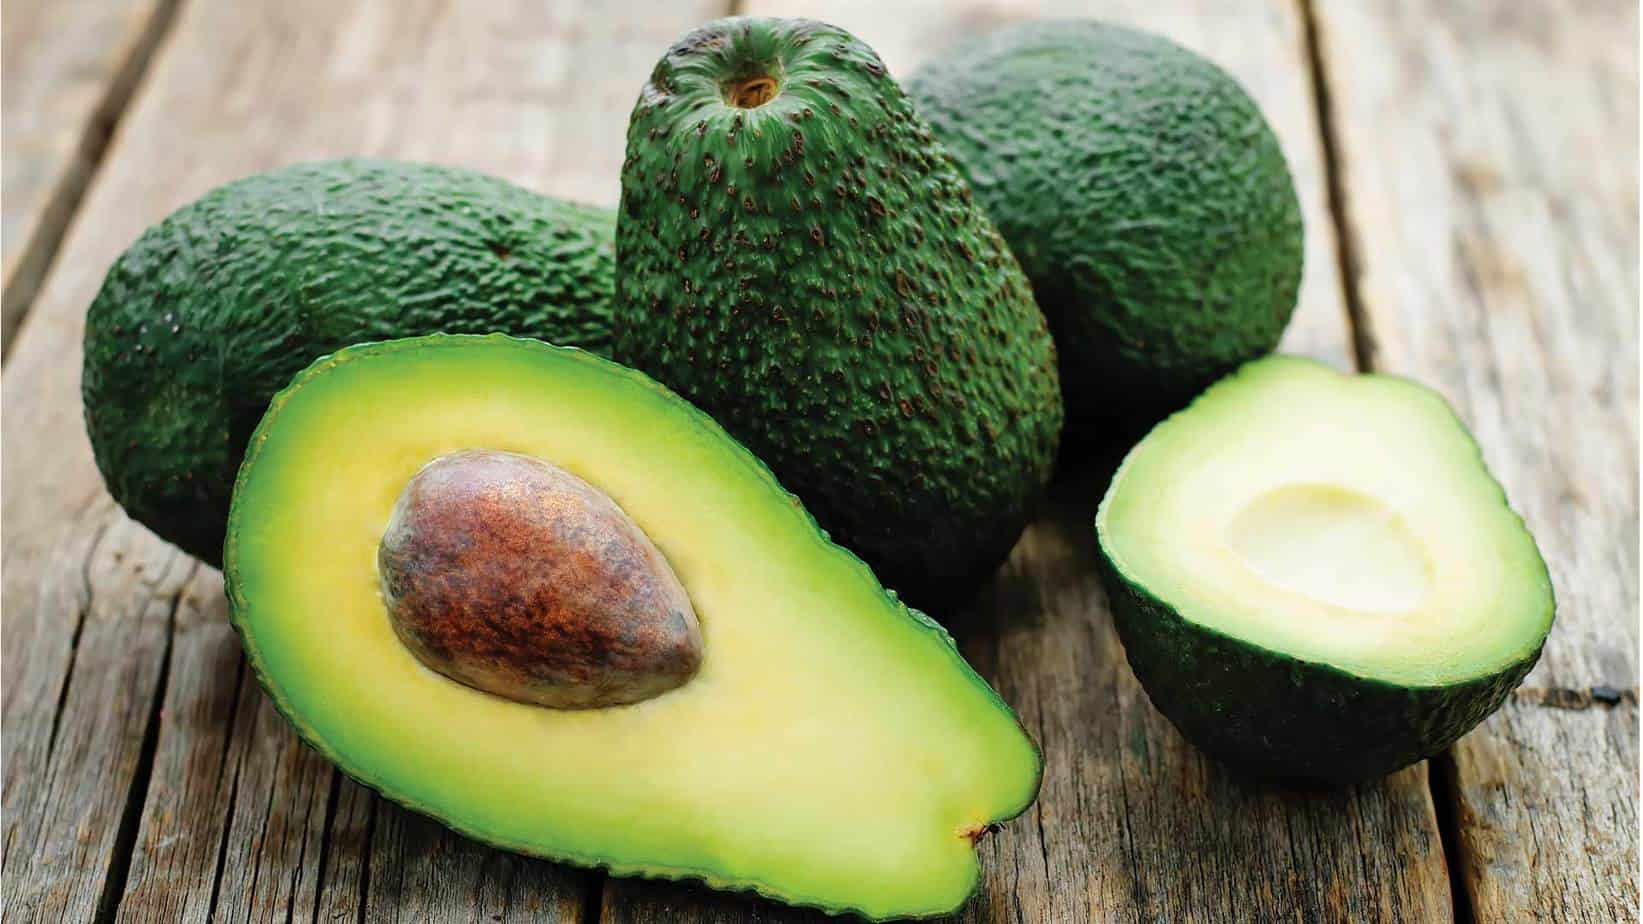 A consignment of Tanzanian avocados destined for Mzansi were confiscated at the Beitbridge border post. Authorities, however, say the intention was not to block imports from the East African nation. Photo: Supplied/Food For Mzansi